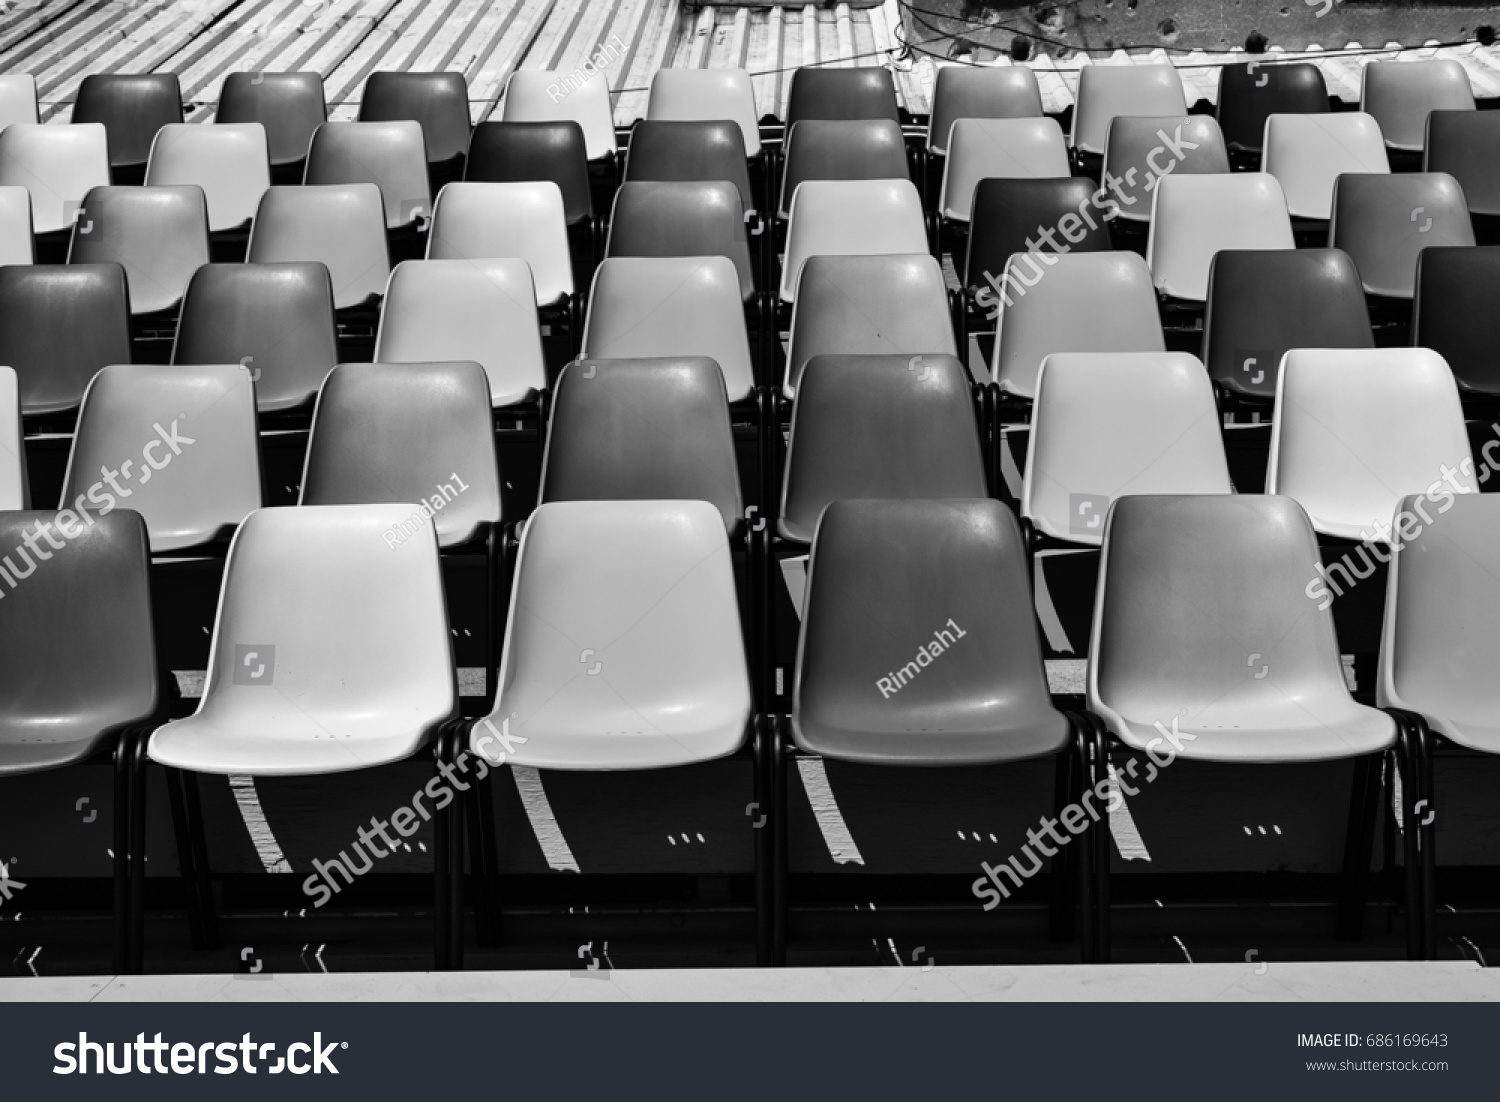 Colorful Plastic Chairs Rows Black White Stock Photo (Royalty Free)  686169643   Shutterstock